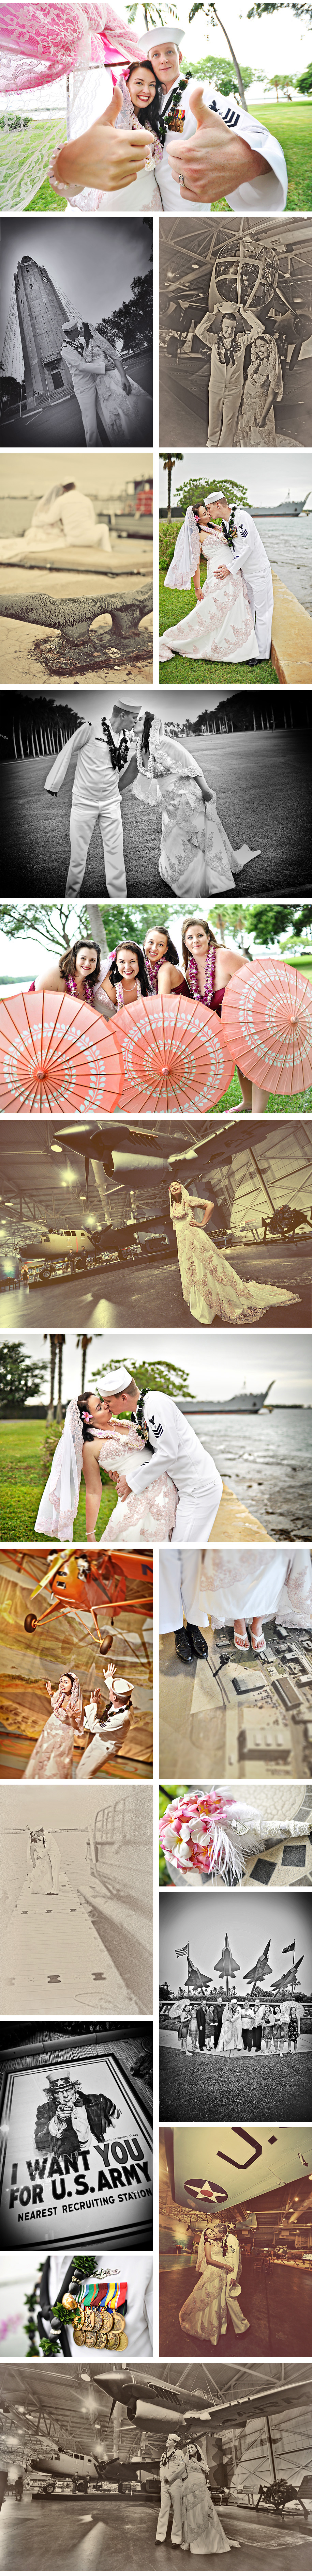 Stephen Ludwig Wedding Photography - Pearl Harbor Wedding - Part 3